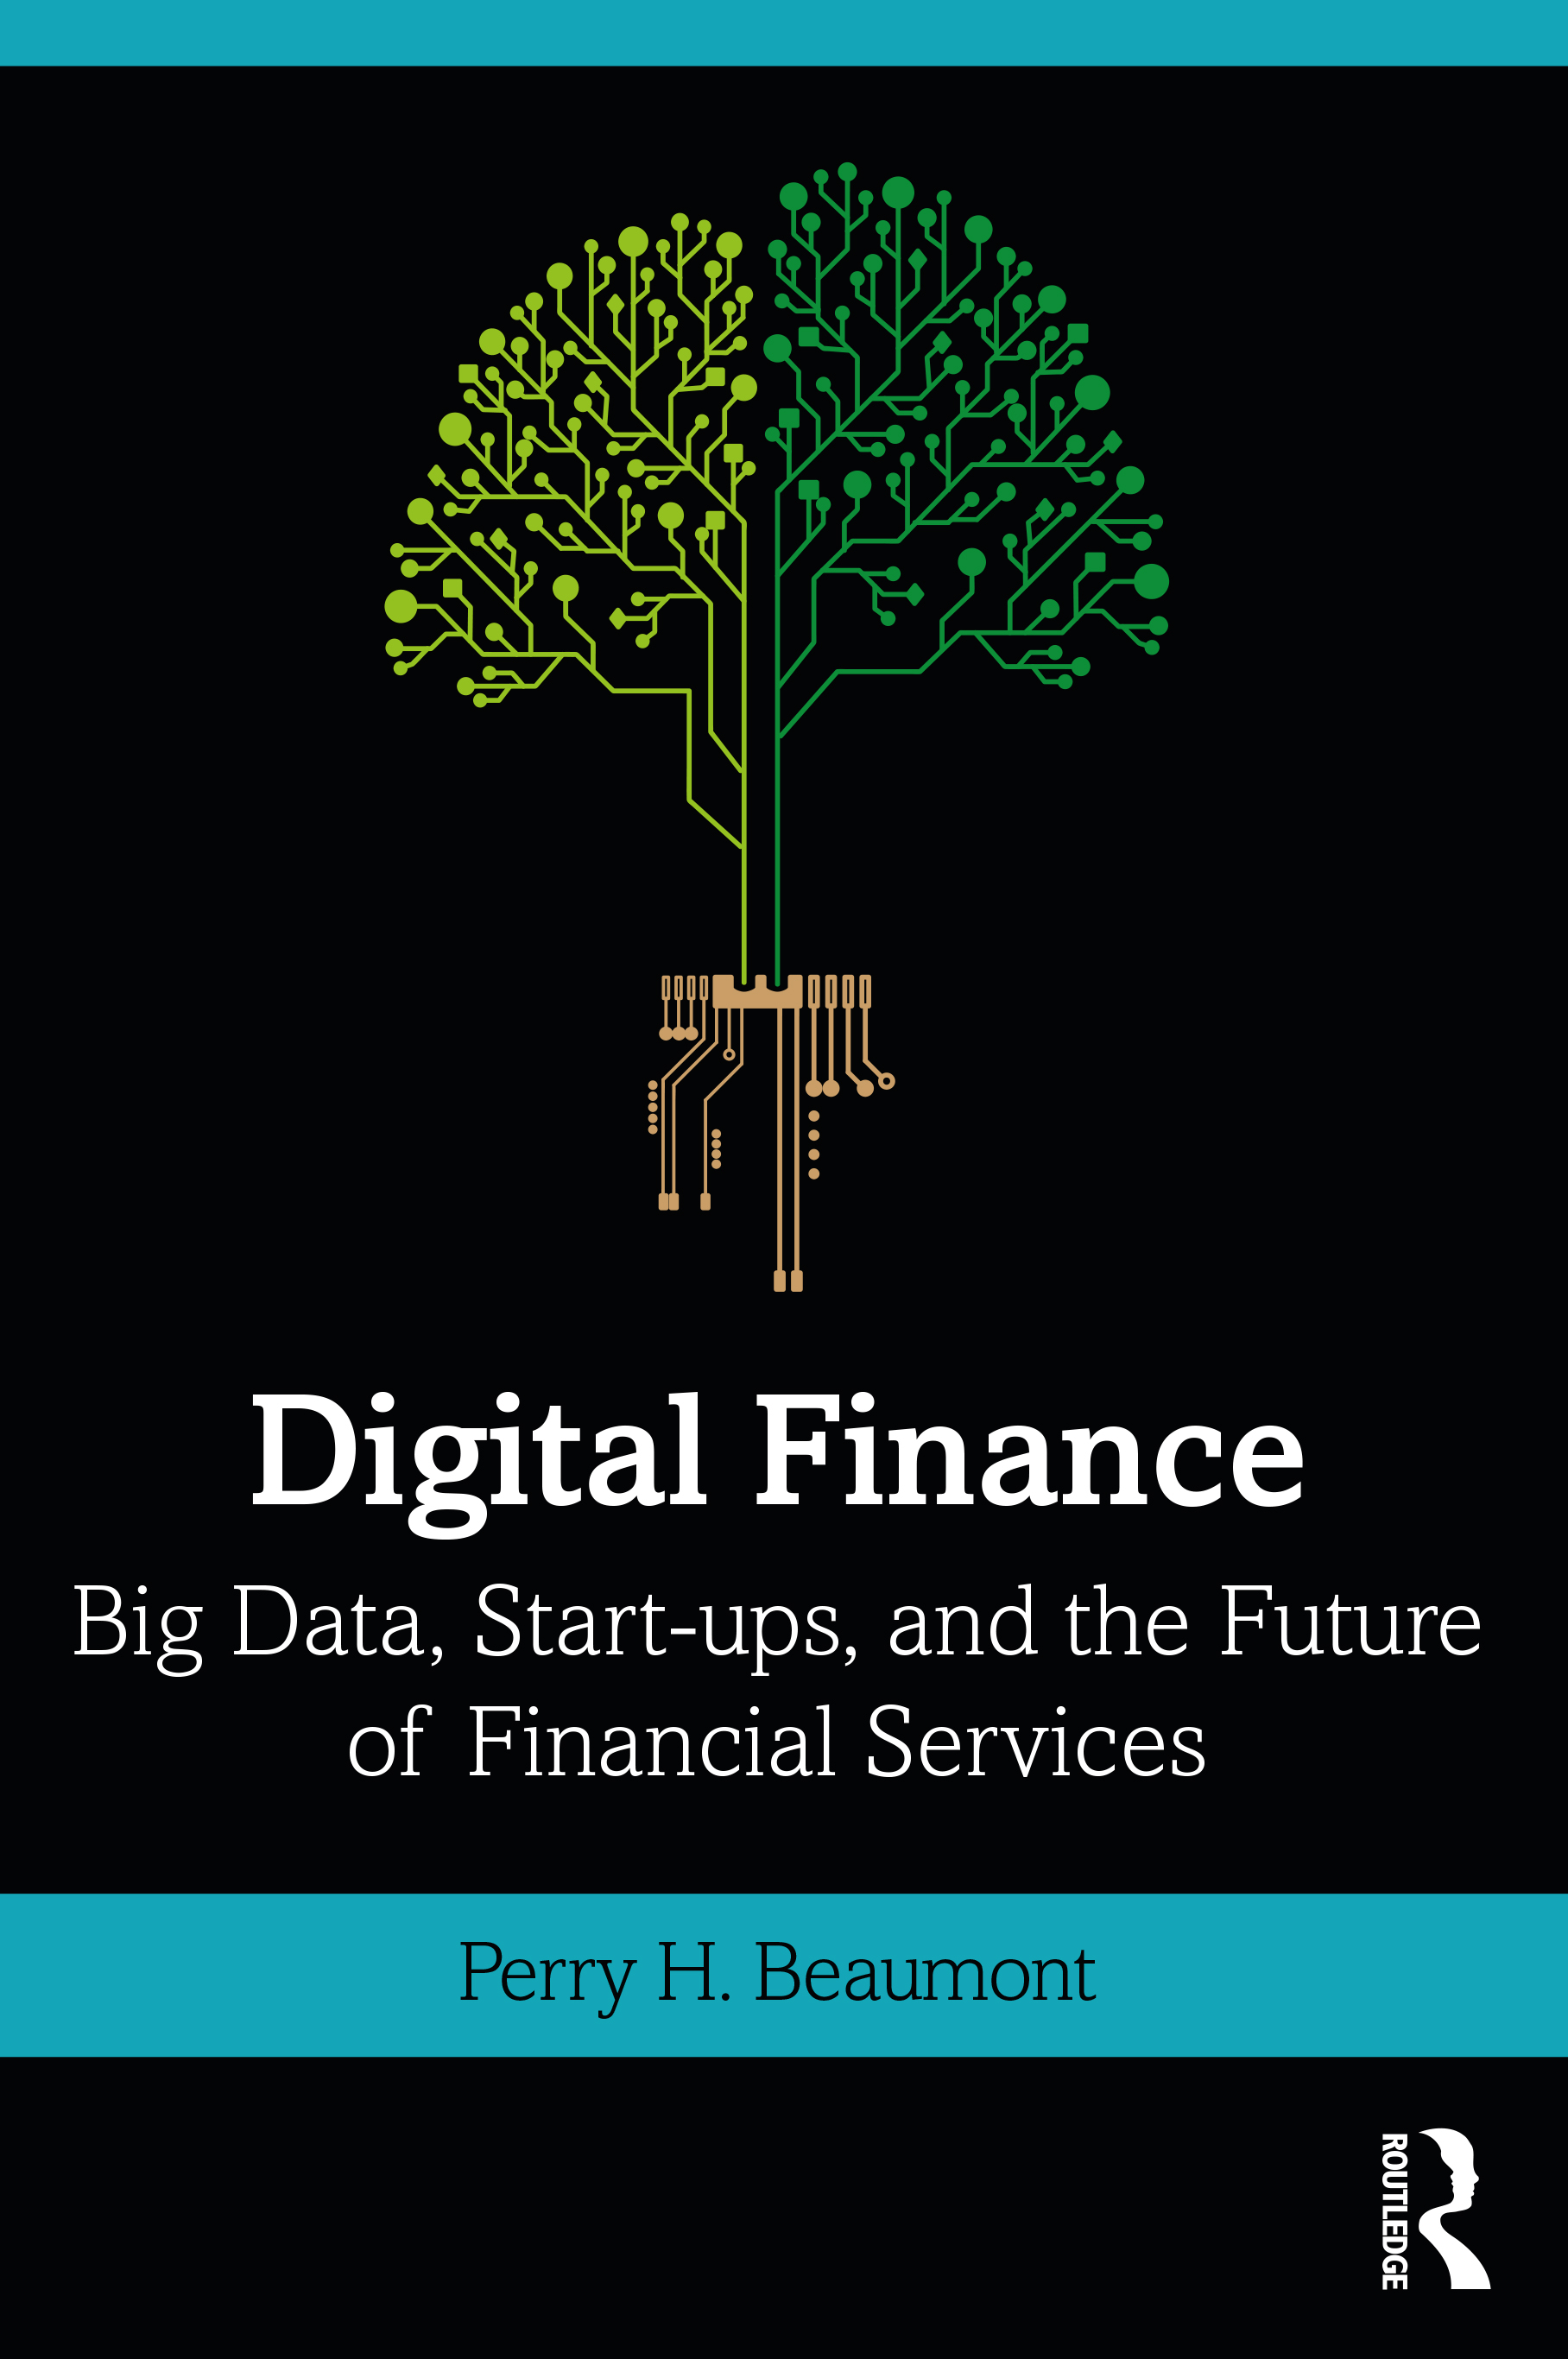 Digital Finance: Big Data, Start-ups, and the Future of Financial Services book cover